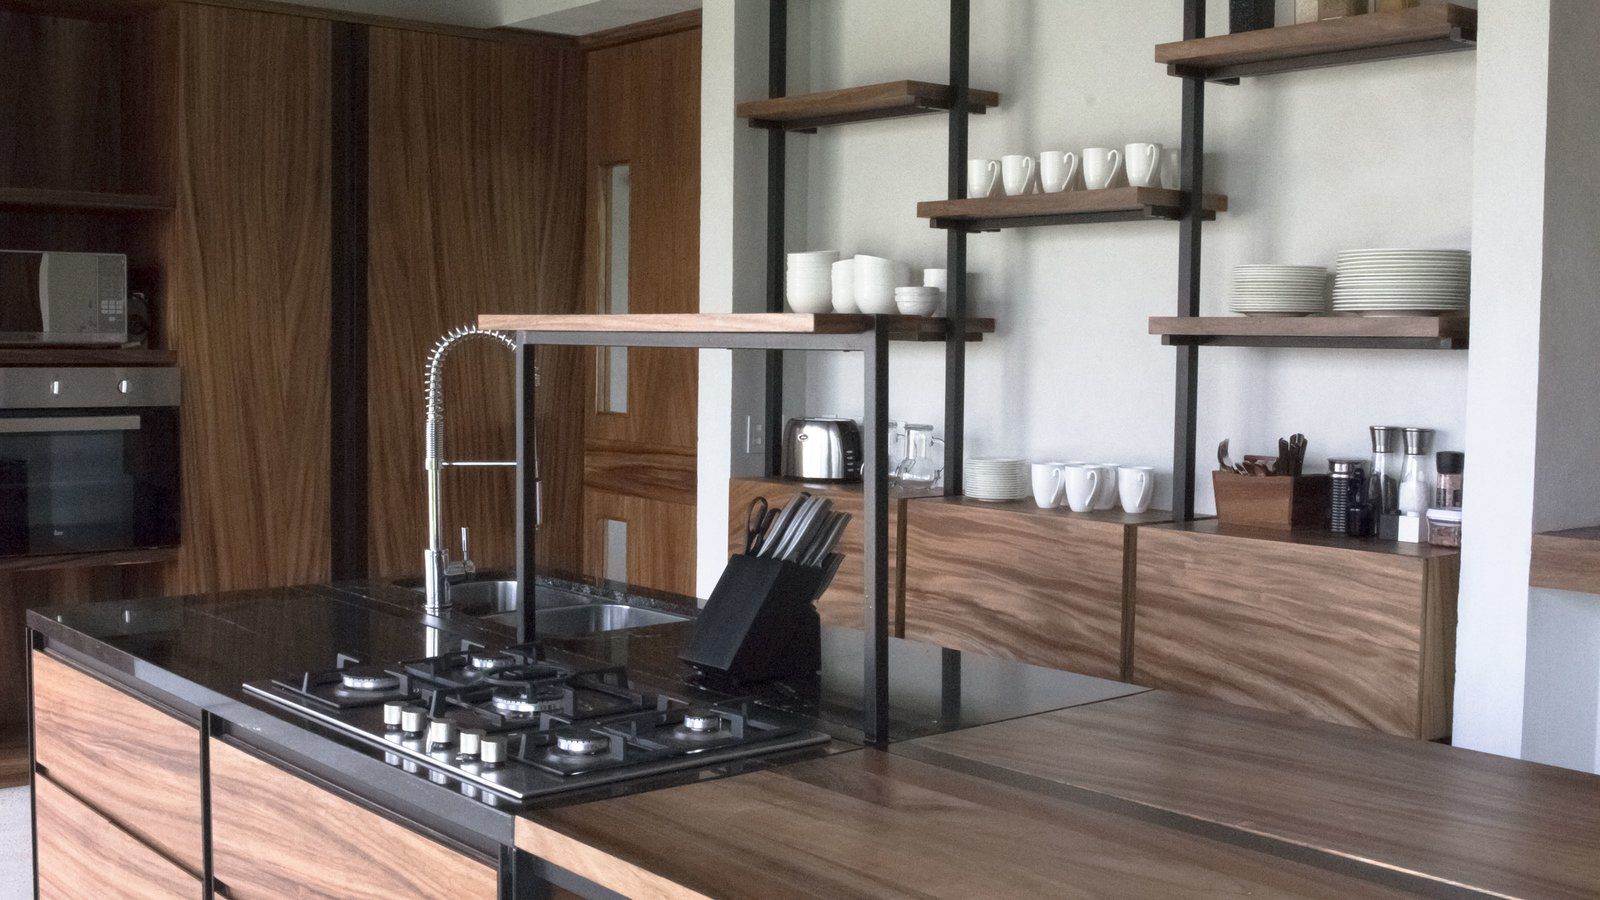 Tagged: Kitchen, Granite Counter, Wood Counter, Metal Counter, Concrete Floor, Wood Cabinet, Refrigerator, Microwave, Wall Oven, and Dishwasher.  Casa Paraíso by DCPP by LCMX